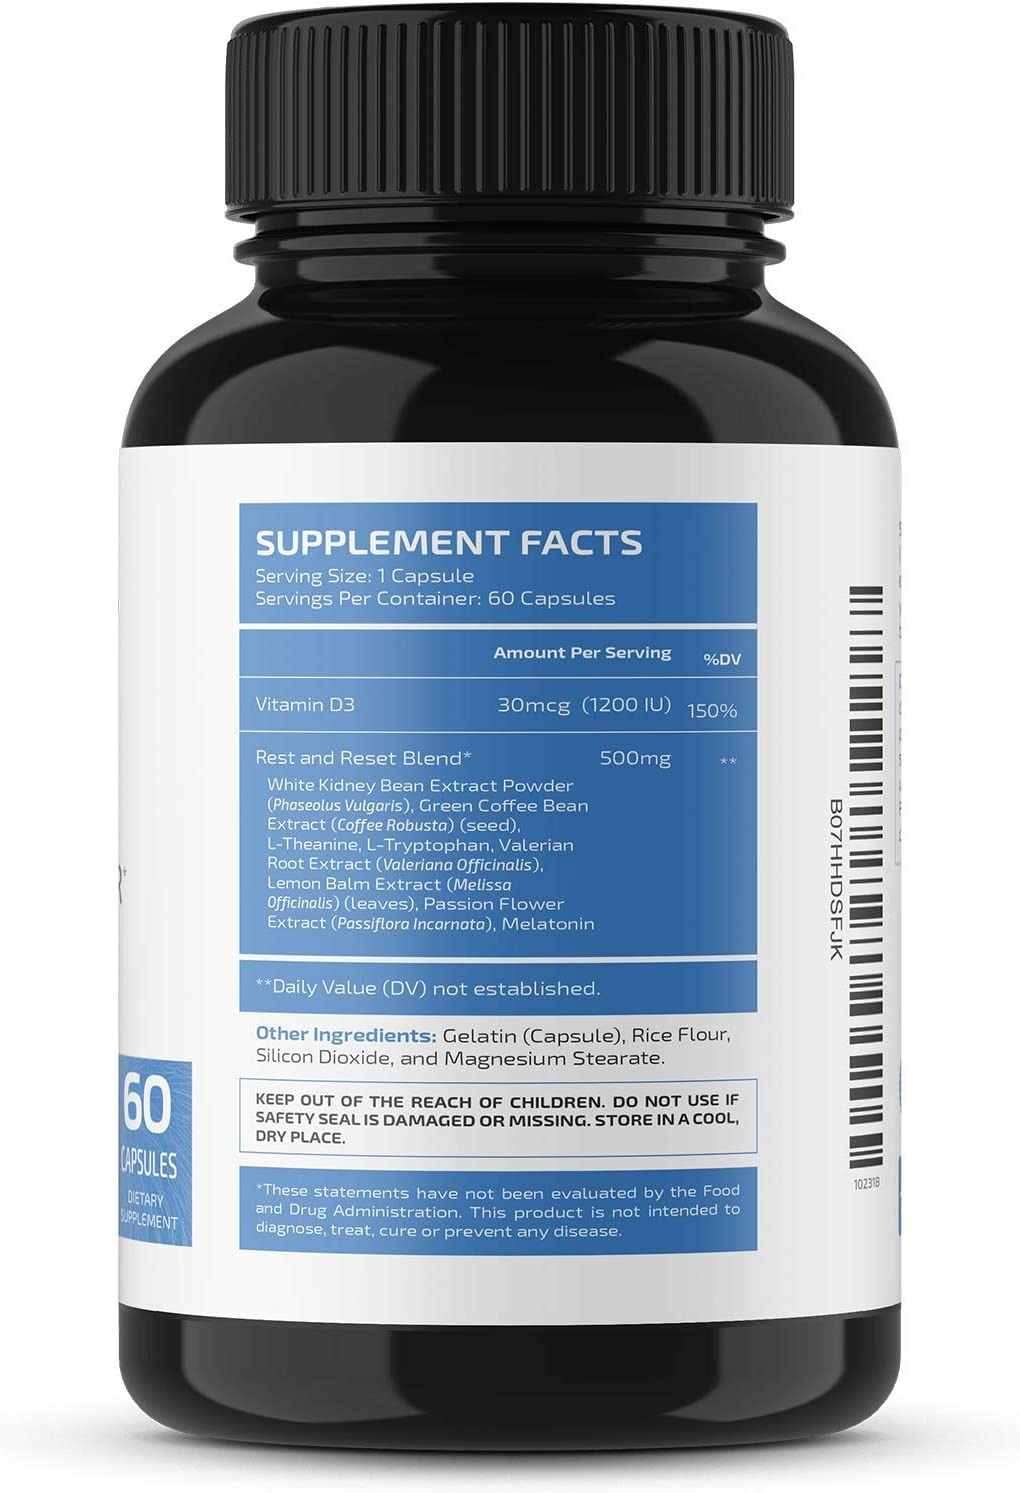 Nobi Nutrition Night Time Fat Burner, Sleep Aid an Appetite Suppressant - Stimulant-Free PM Weight Loss Pills & Metabolism Booster for Men and Women - Healthier Diet Pills - 60 Capsules